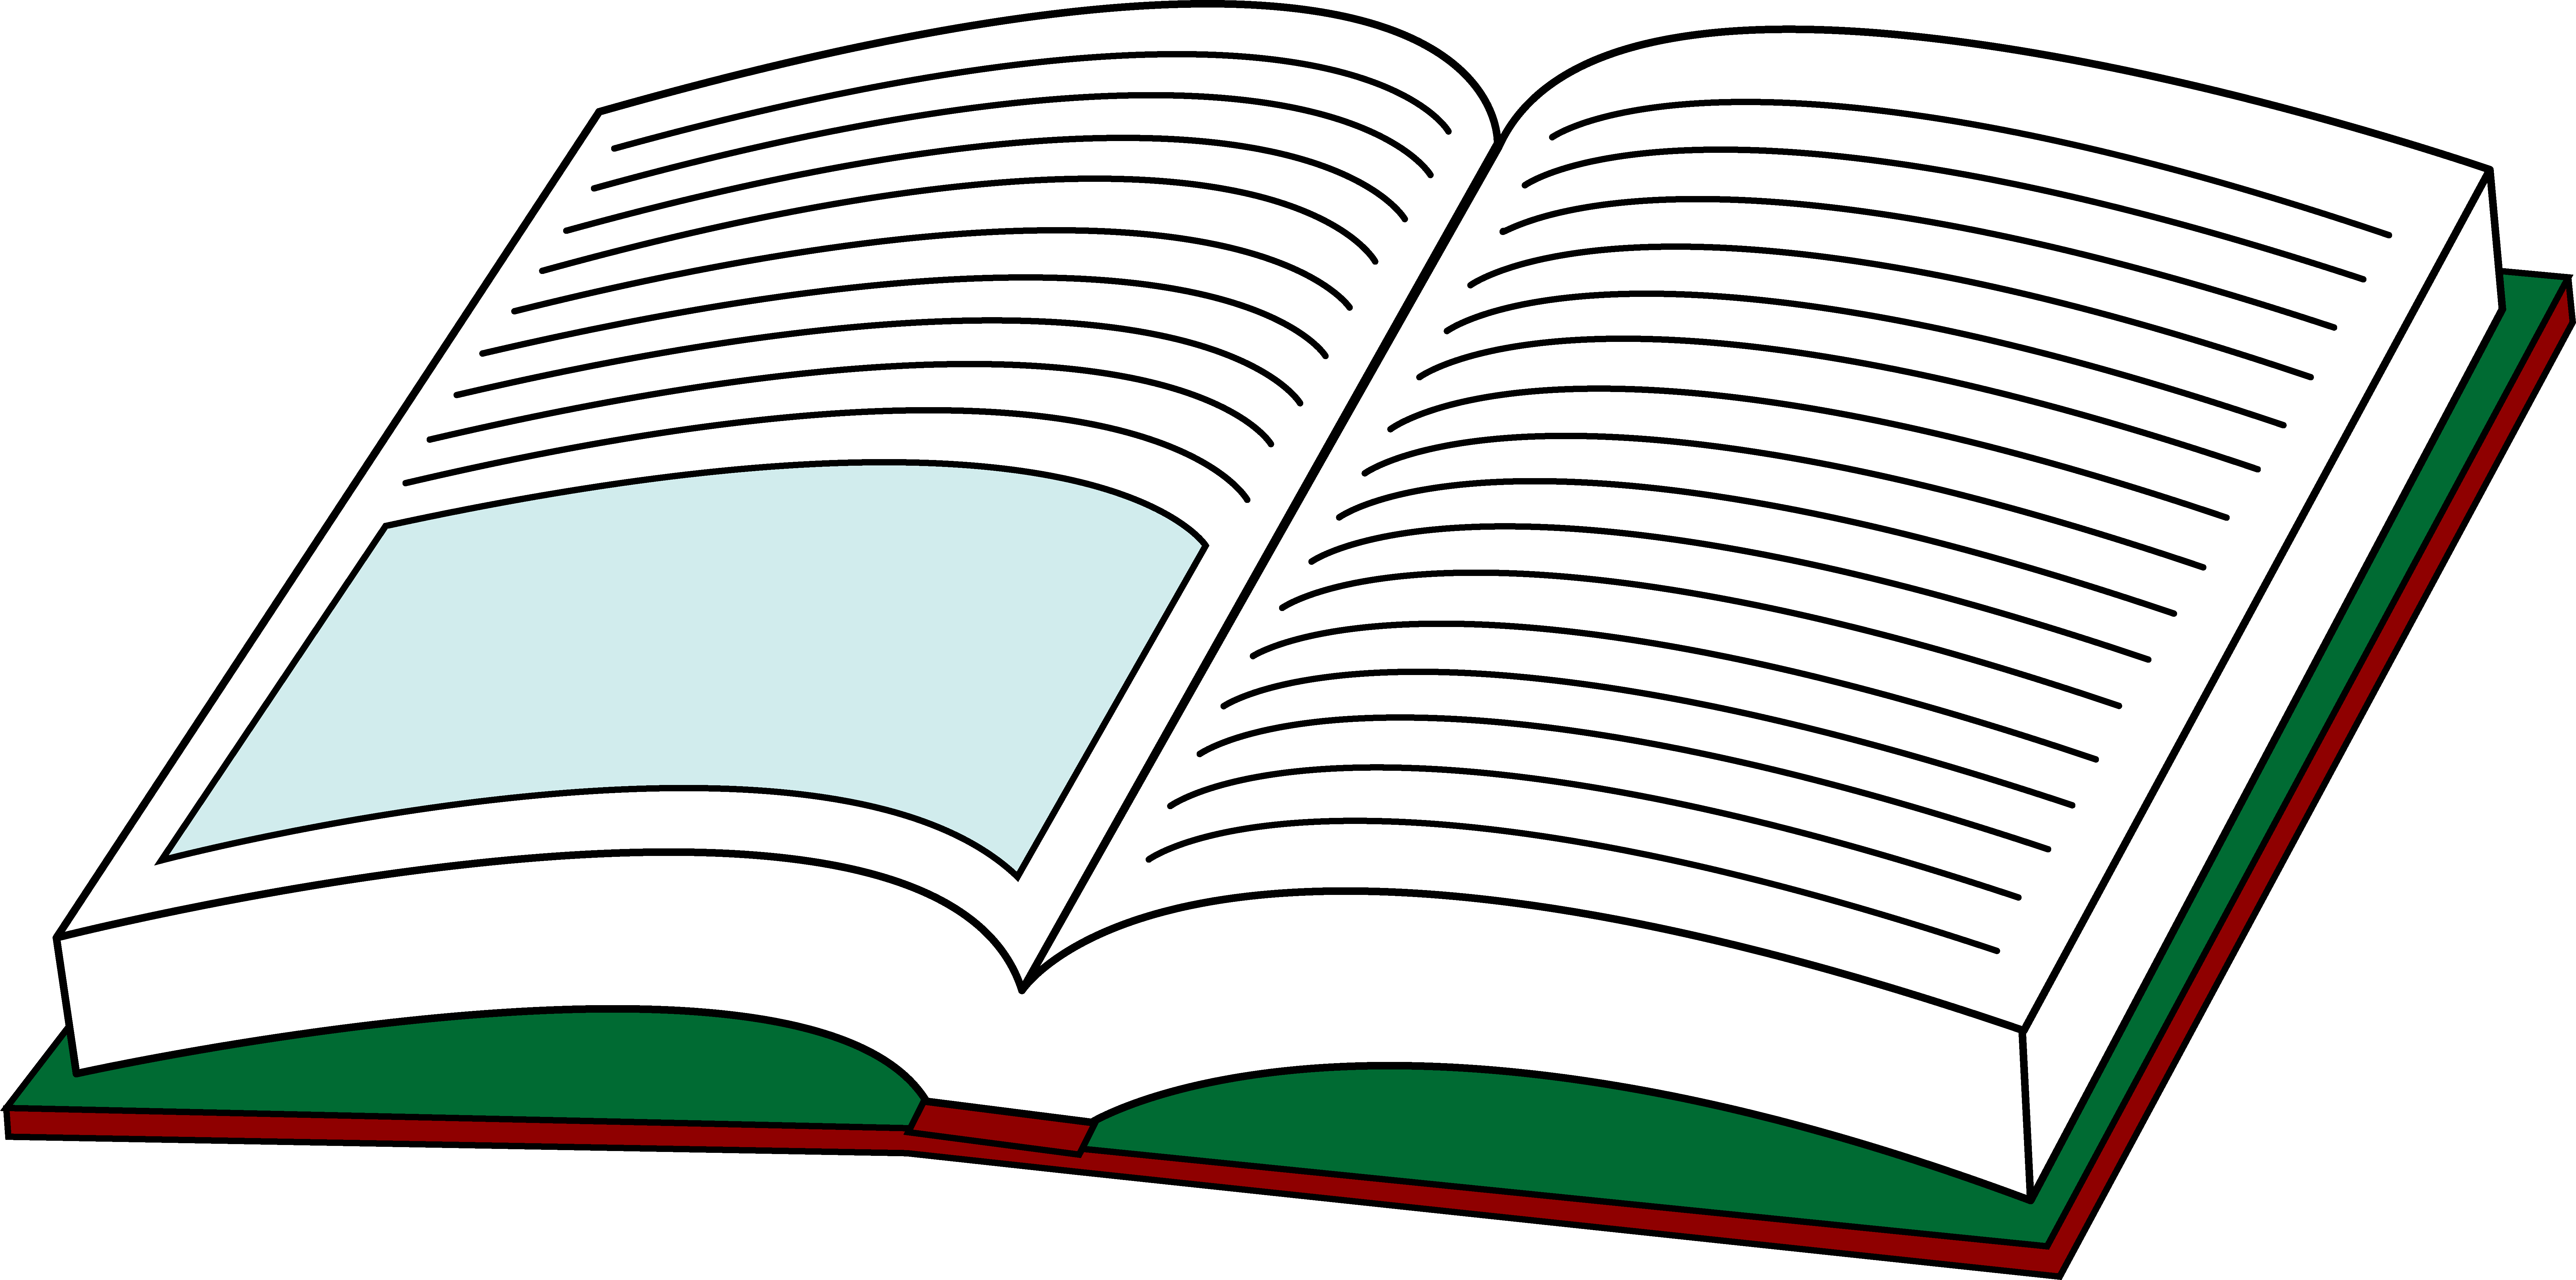 An Open Textbook - Free Clip Art